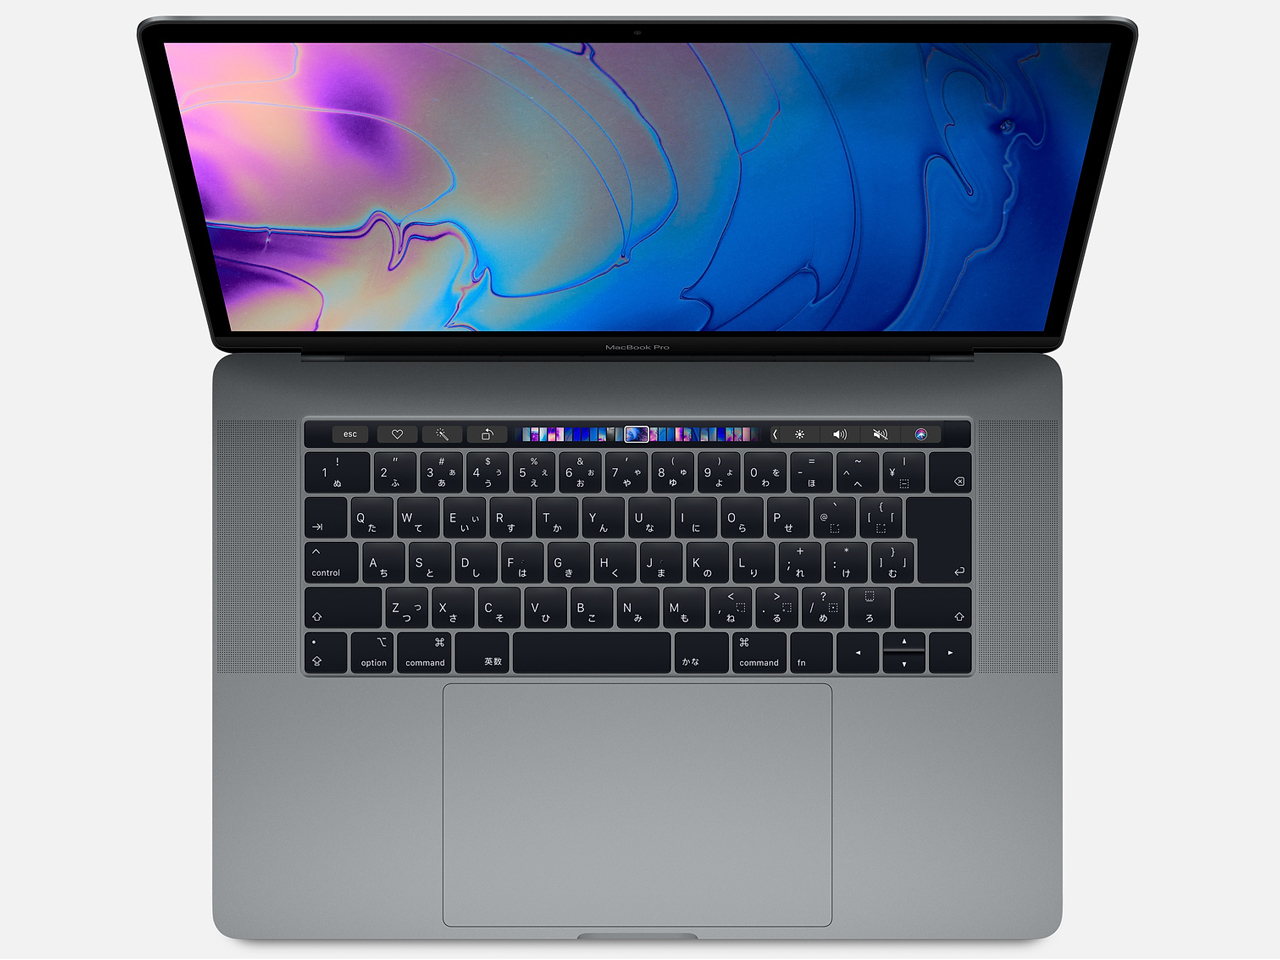 MacBook Pro (Retina, 15.4-inch, SSD 512GB, Touch Bar, 2019) MV912J/A スペースグレイ